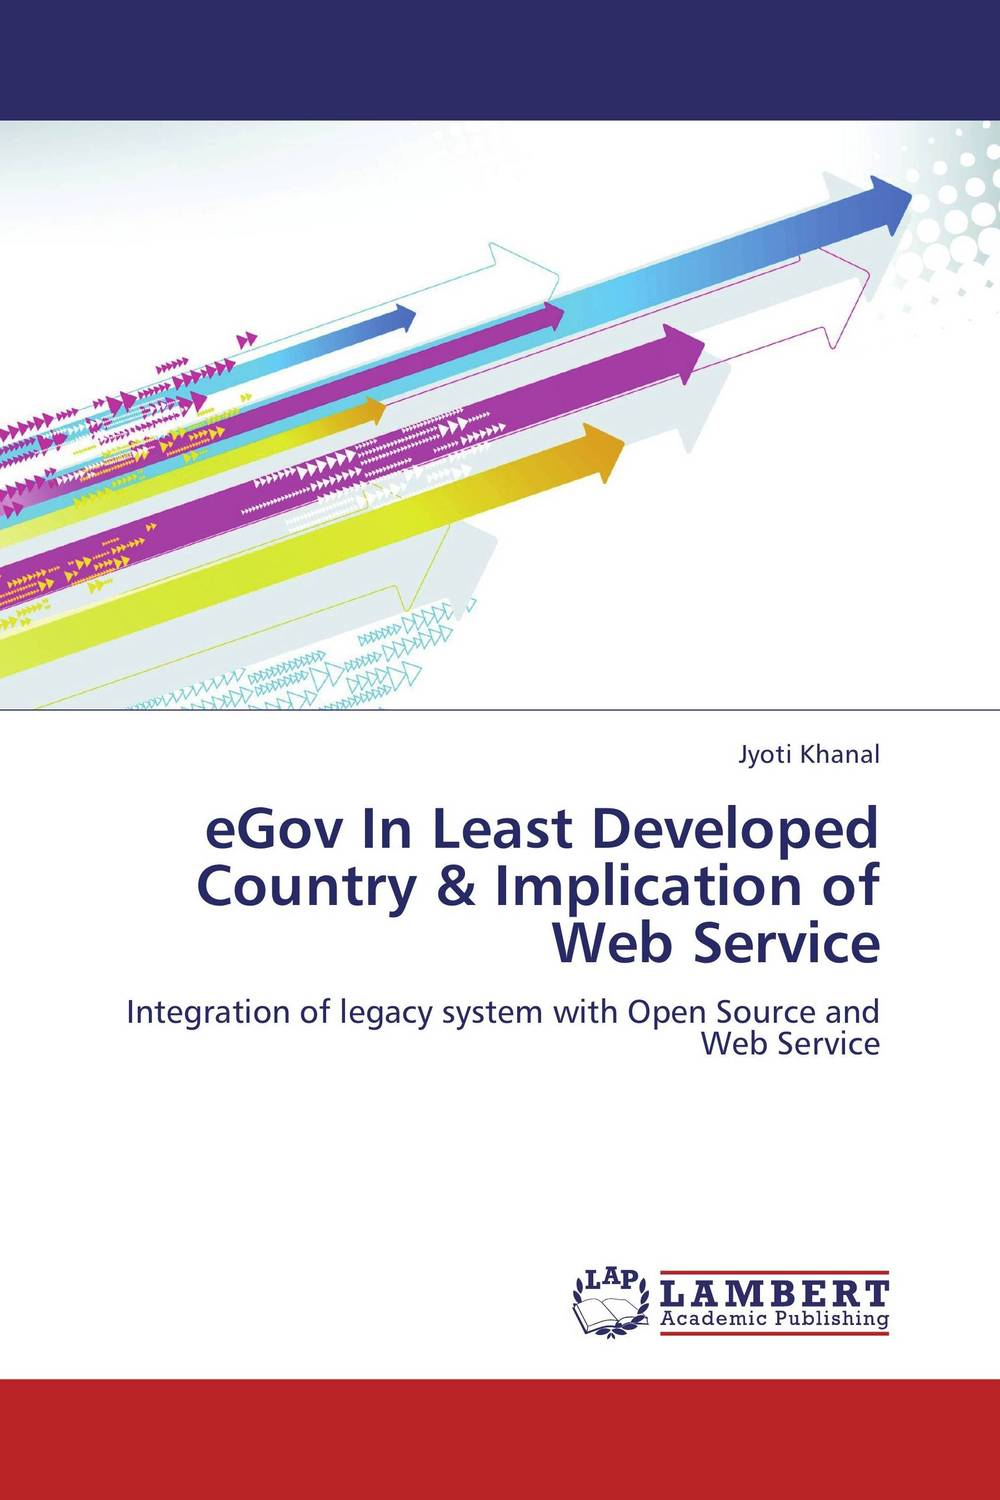 eGov In Least Developed Country & Implication of Web Service analyzing the usage of open source products for soa